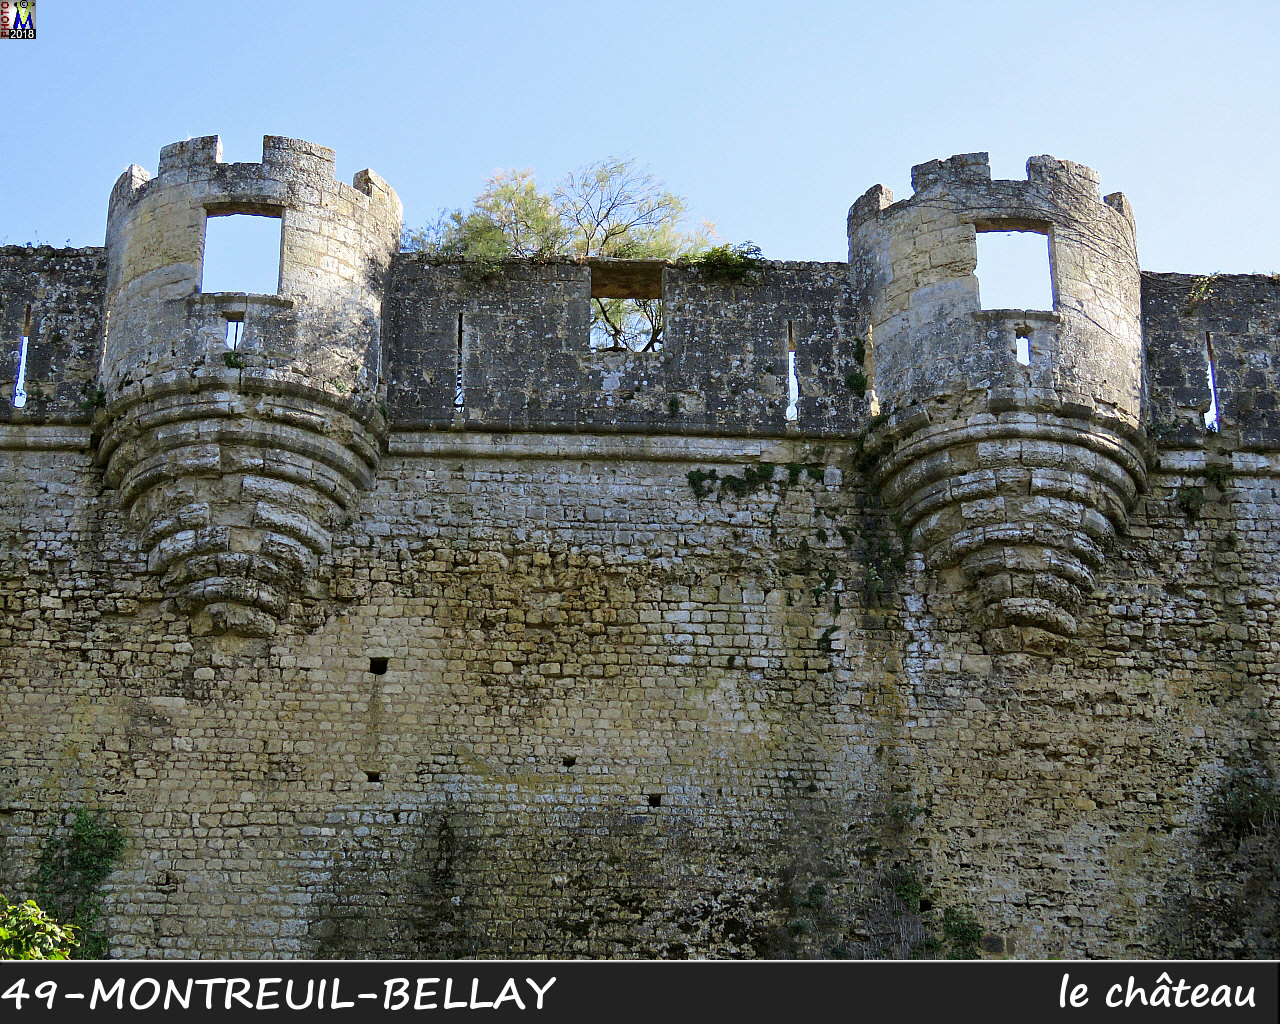 49MONTREUIL-BELLAY_chateau_1066.jpg